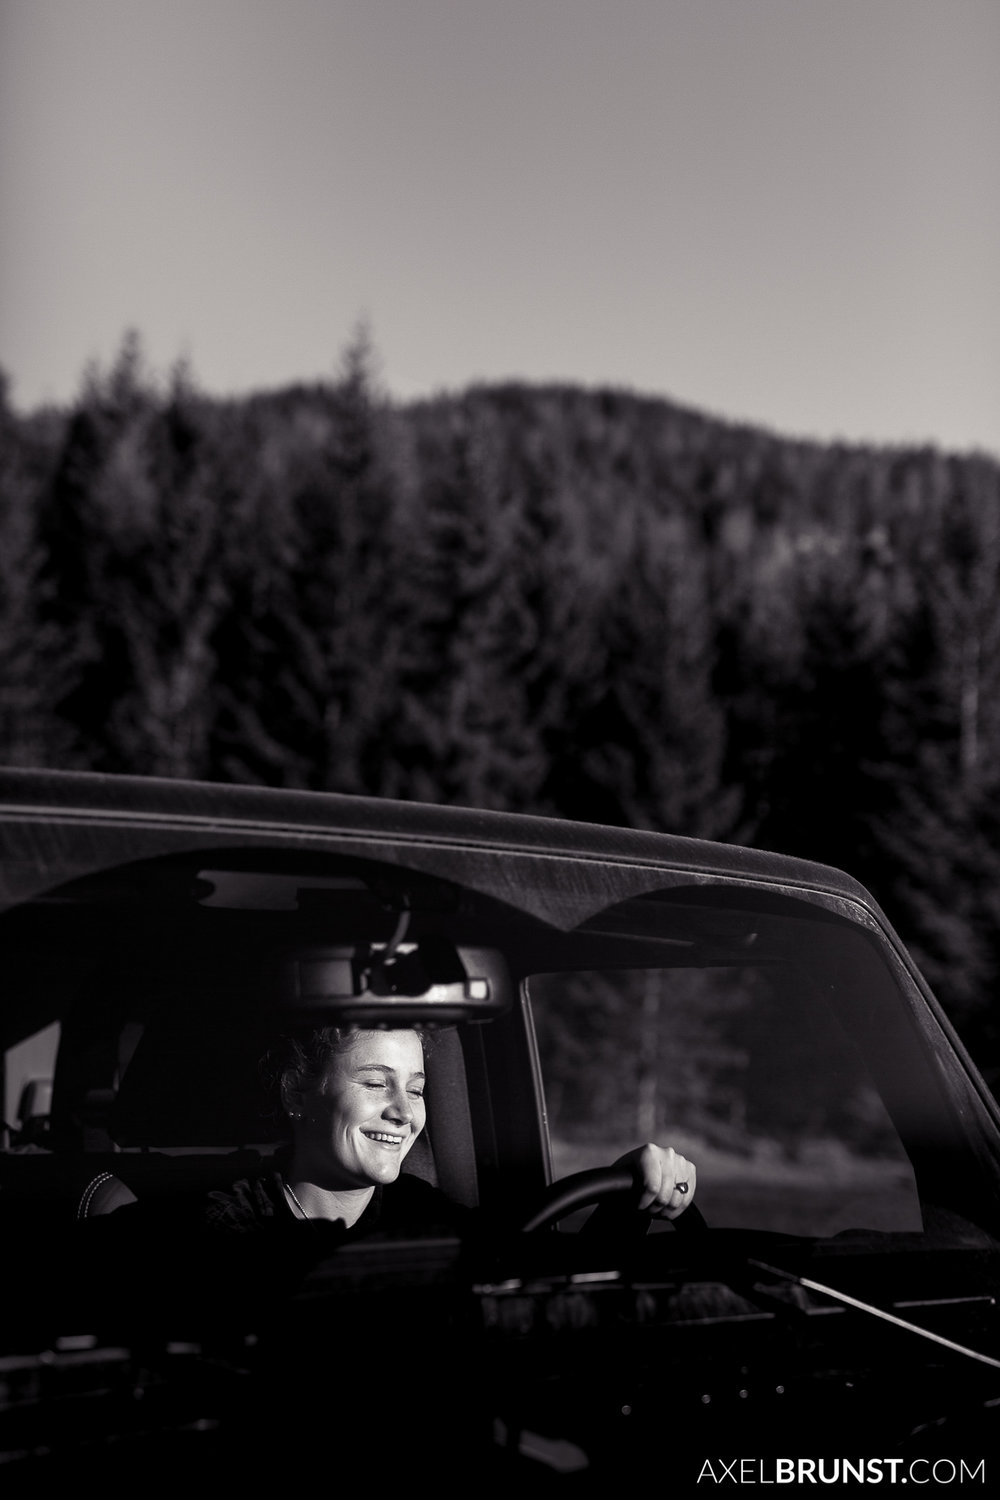 jeep-wrangler-roadtrip-alps-15.jpg